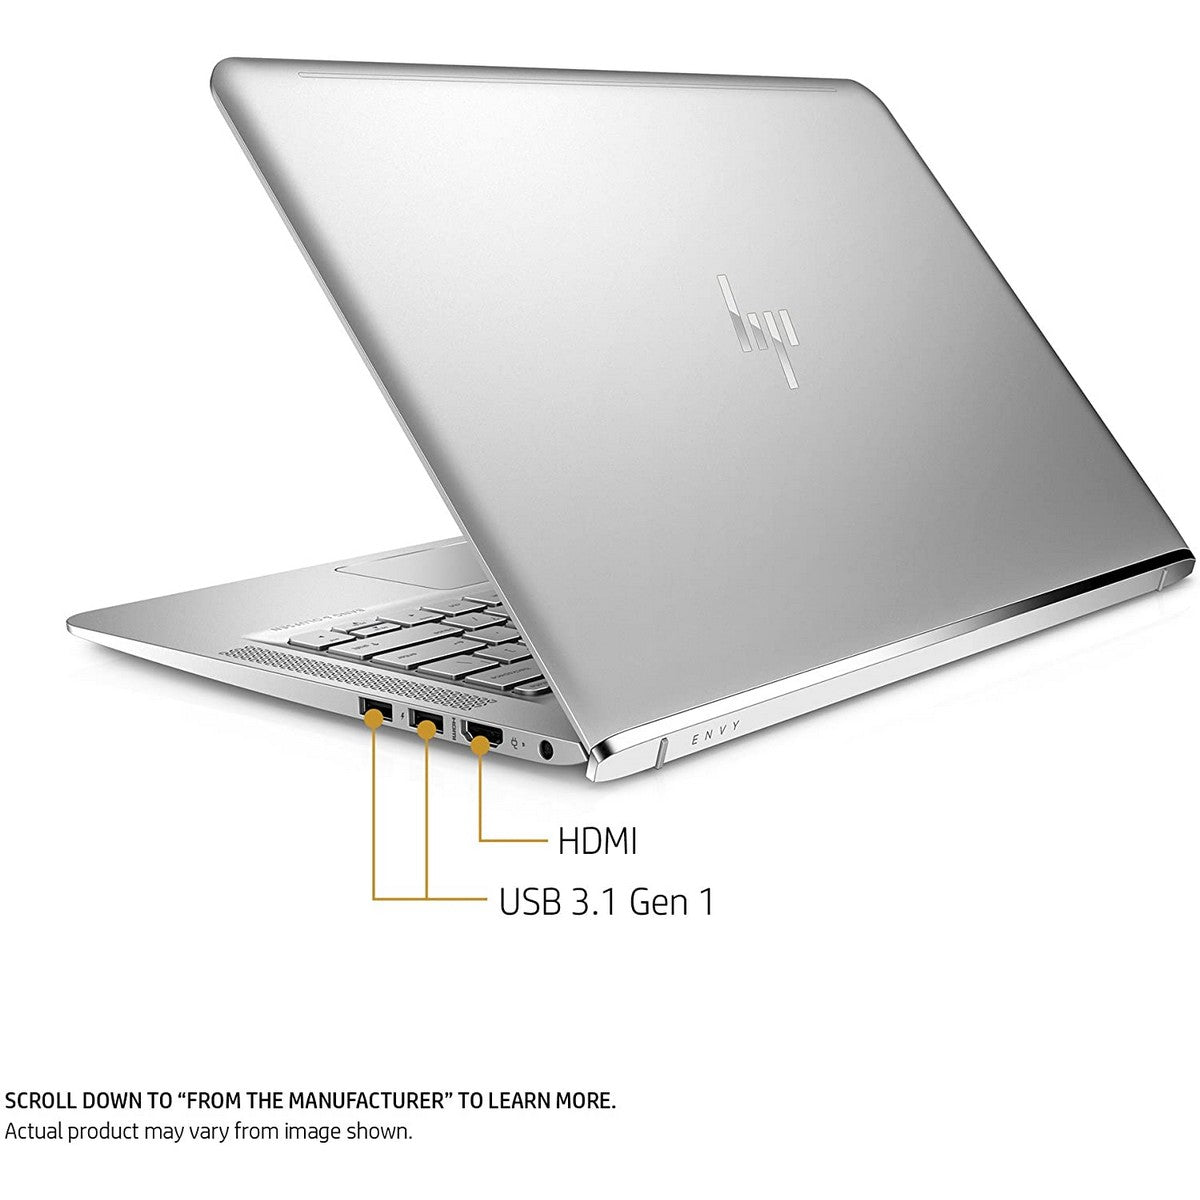 HP Envy 13T Laptop 13.3'' FHD IPS , Intel Core i7 i7-10510U 1.8GHz up to 4.9GHz 8 MB cache, 16GB RAM, GeForce MX250 2GB GPU, 512GB SSD, Touchscreen, Windows 10 Pro, English Keyboard, Natural Silver